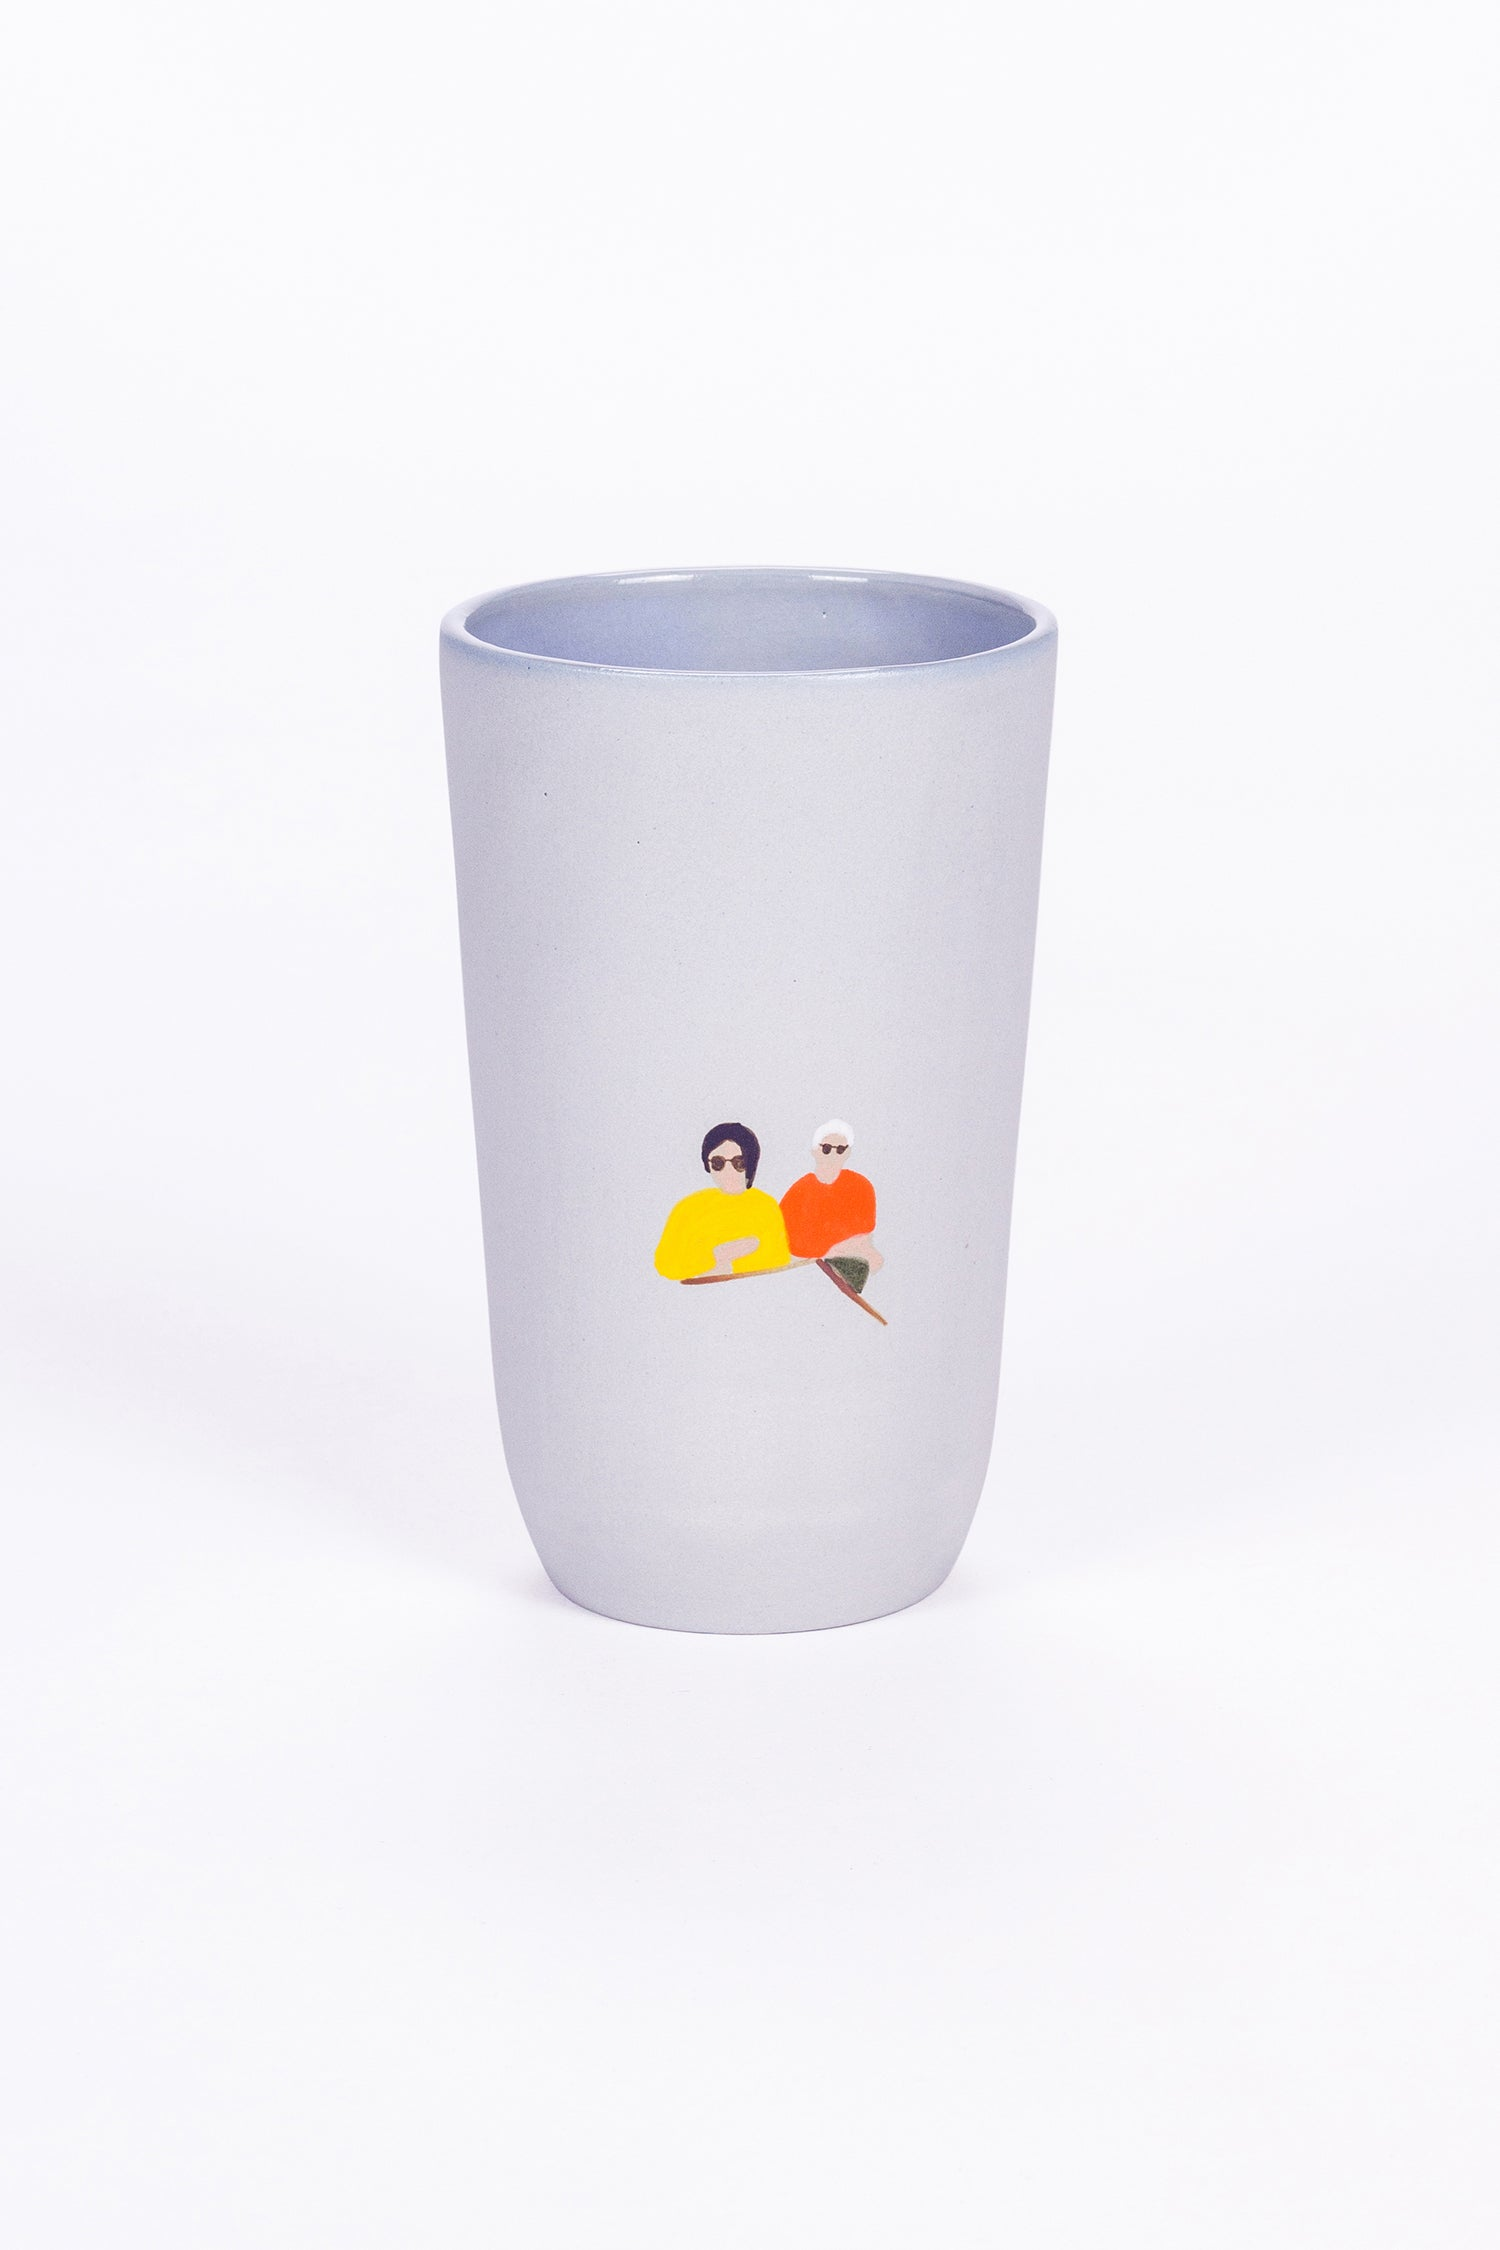 HIGH CUP - BLUE - COUPLE AT TABLE